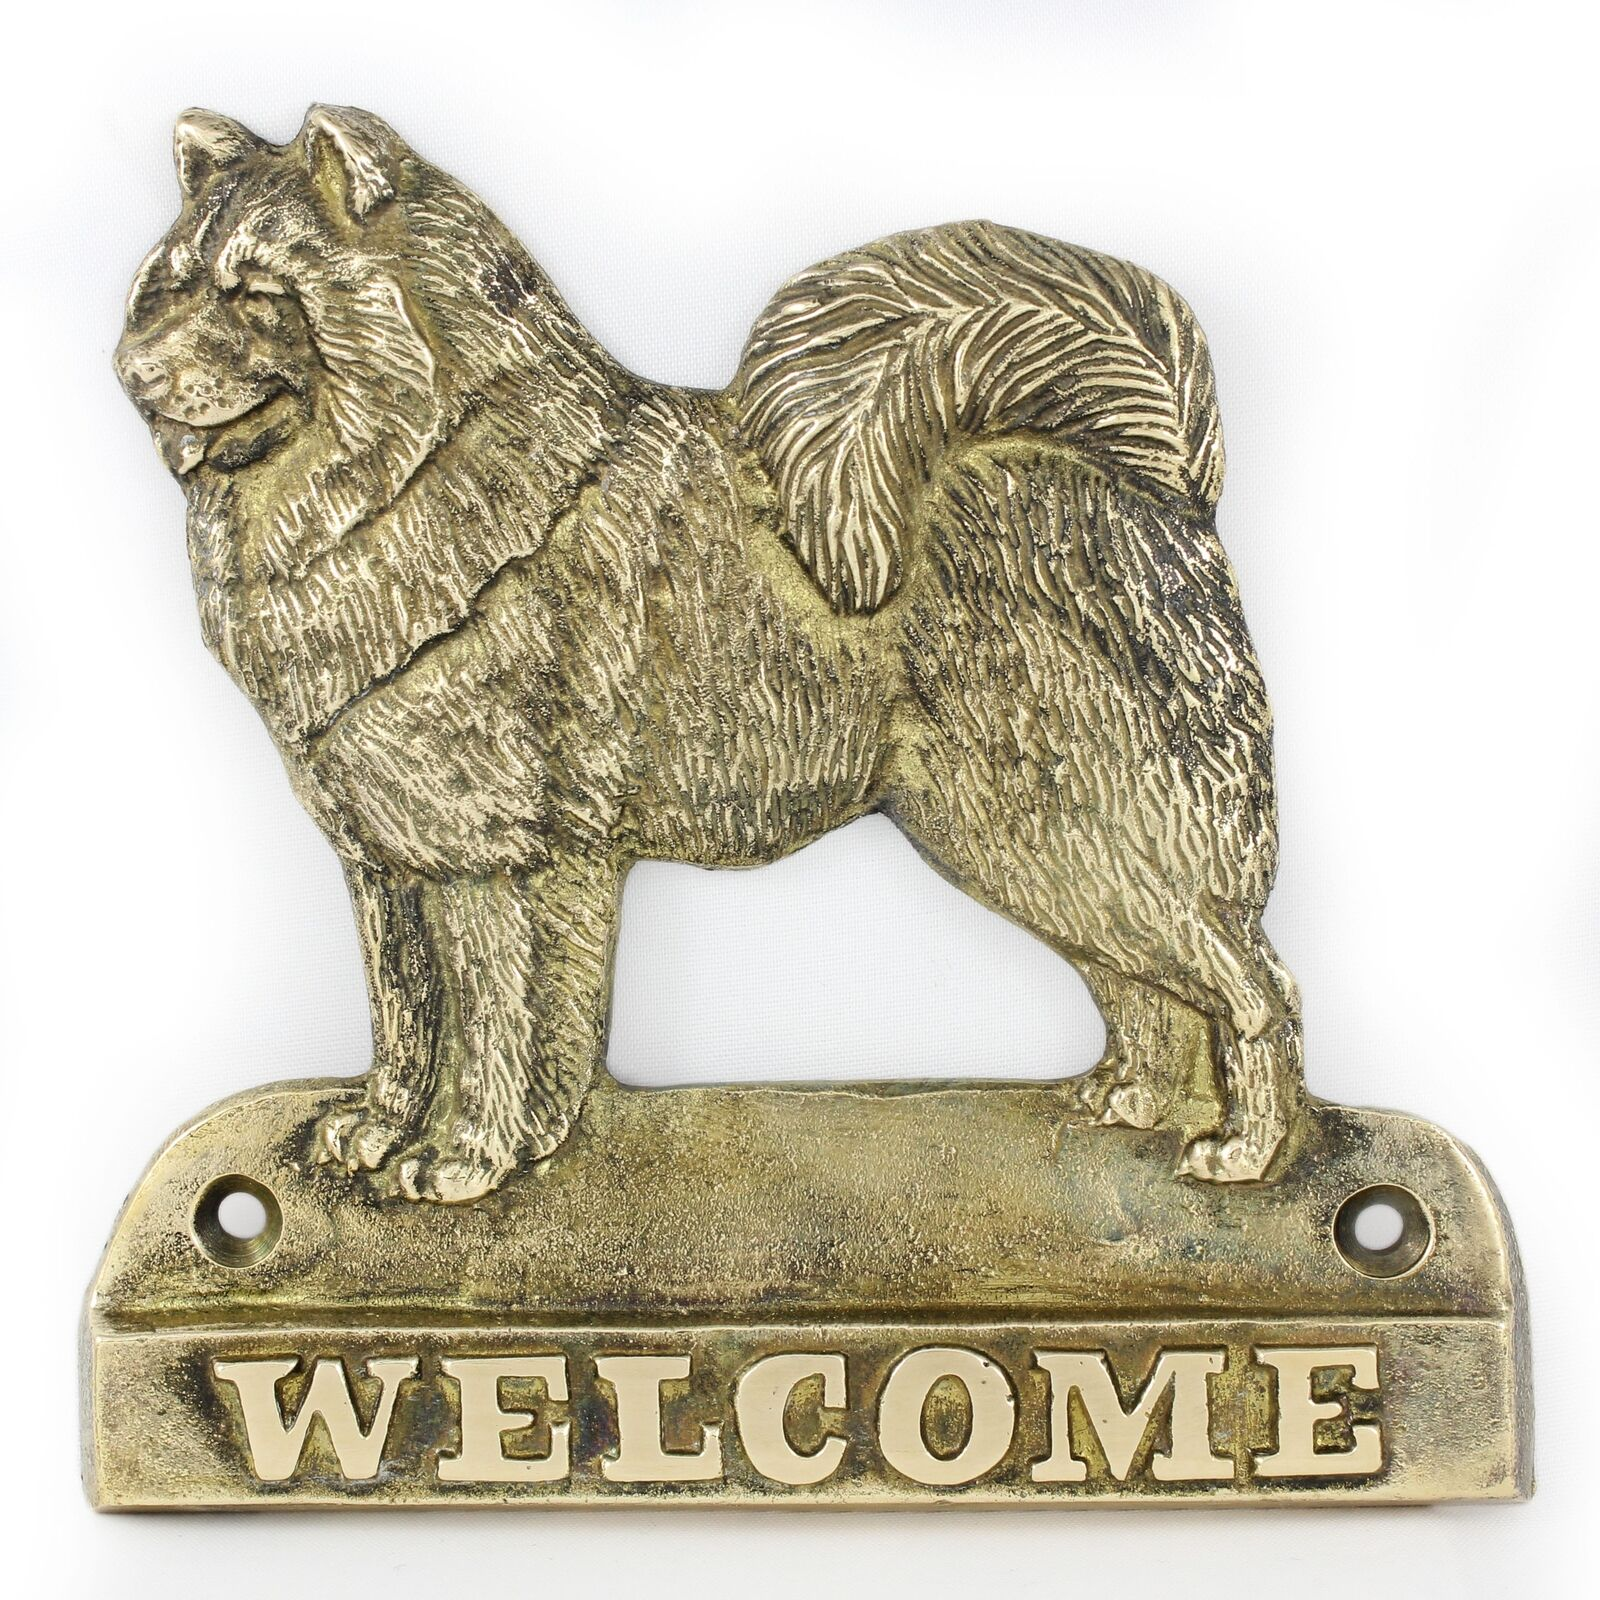 Samoyed - brass tablet with image of a dog, Art Dog